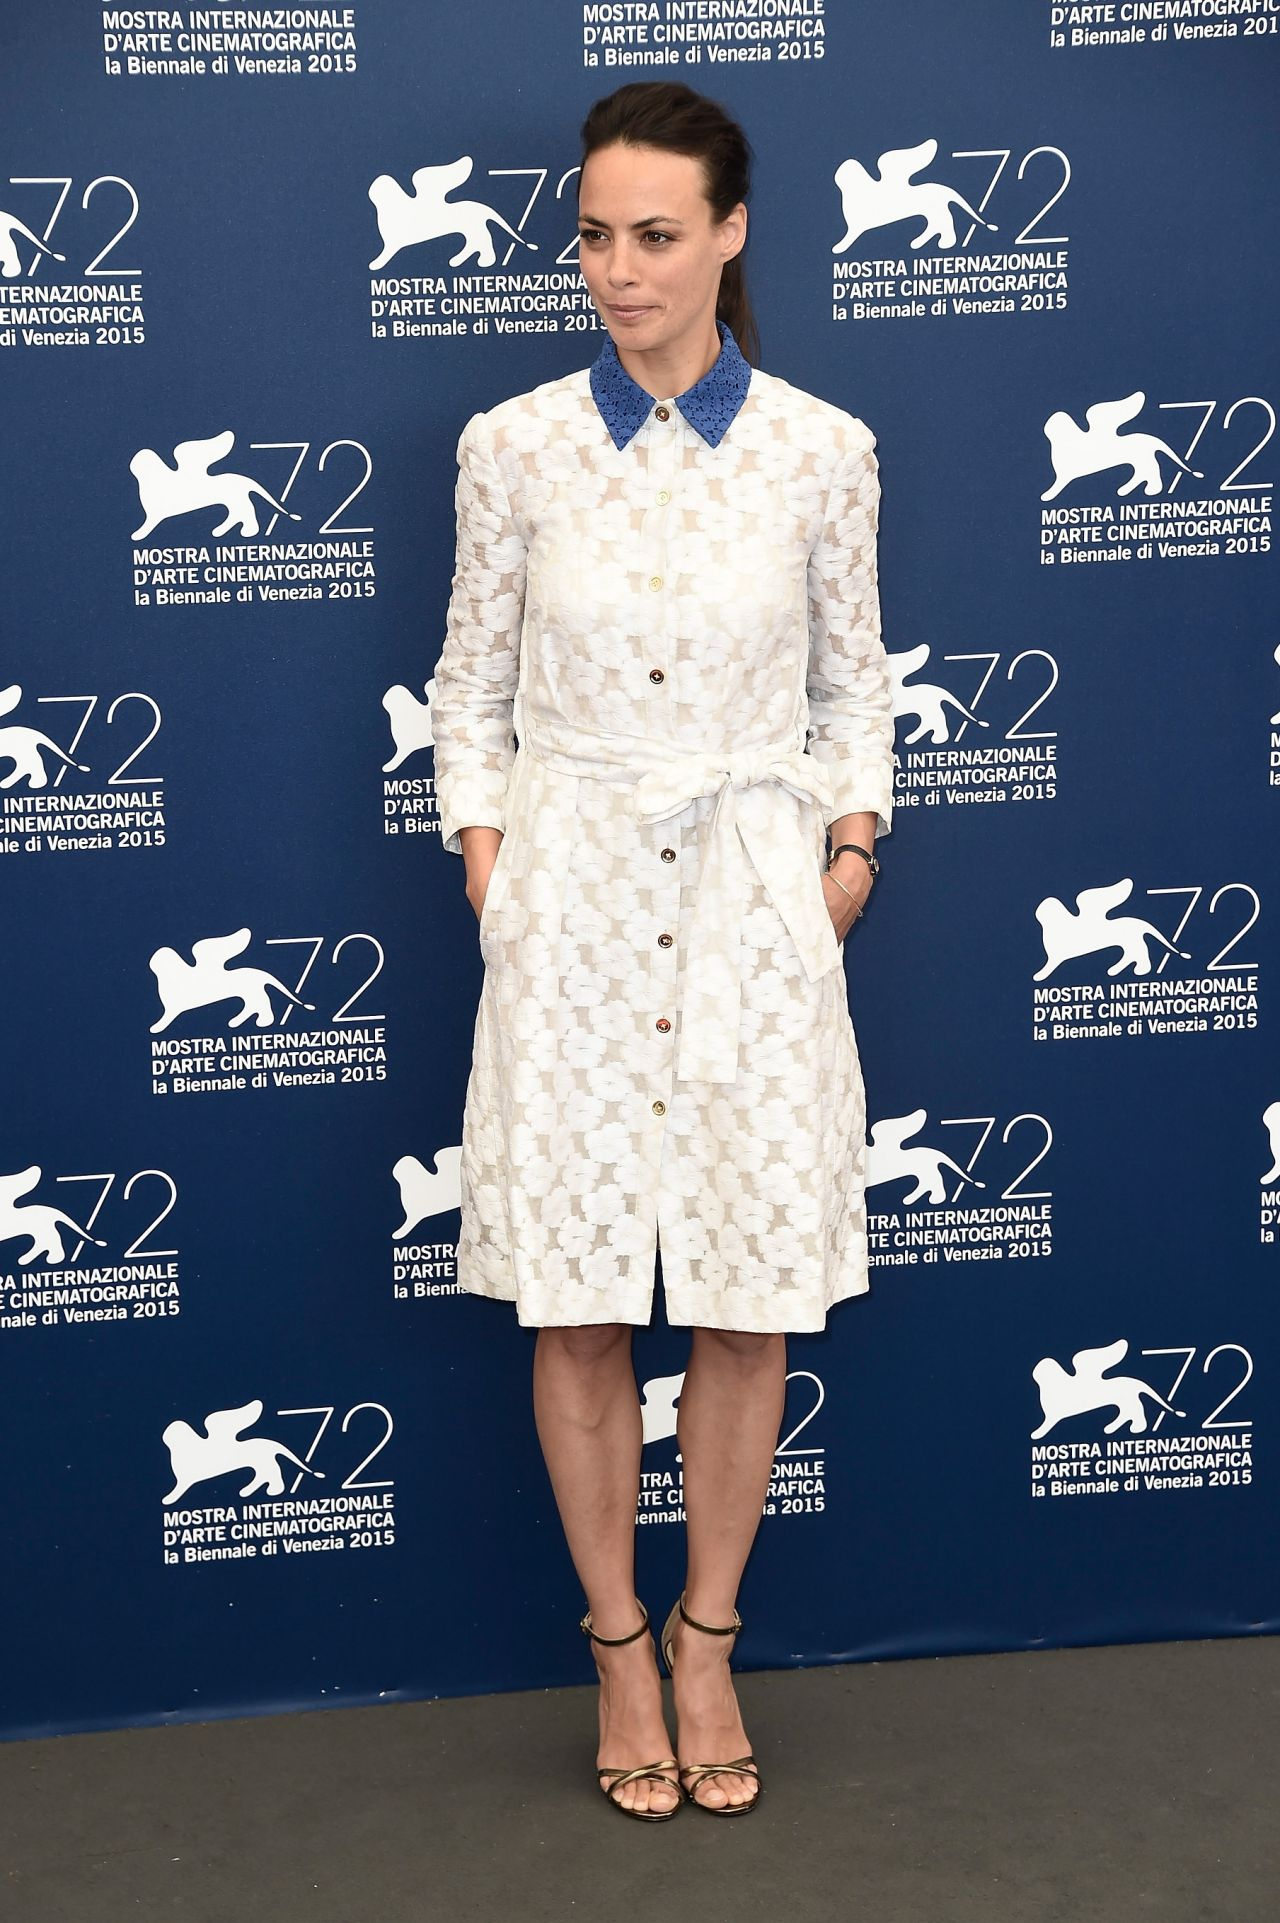 berenice-bejo-the-childhood-of-a-leader-photocall-72nd-venice-film-festival_10